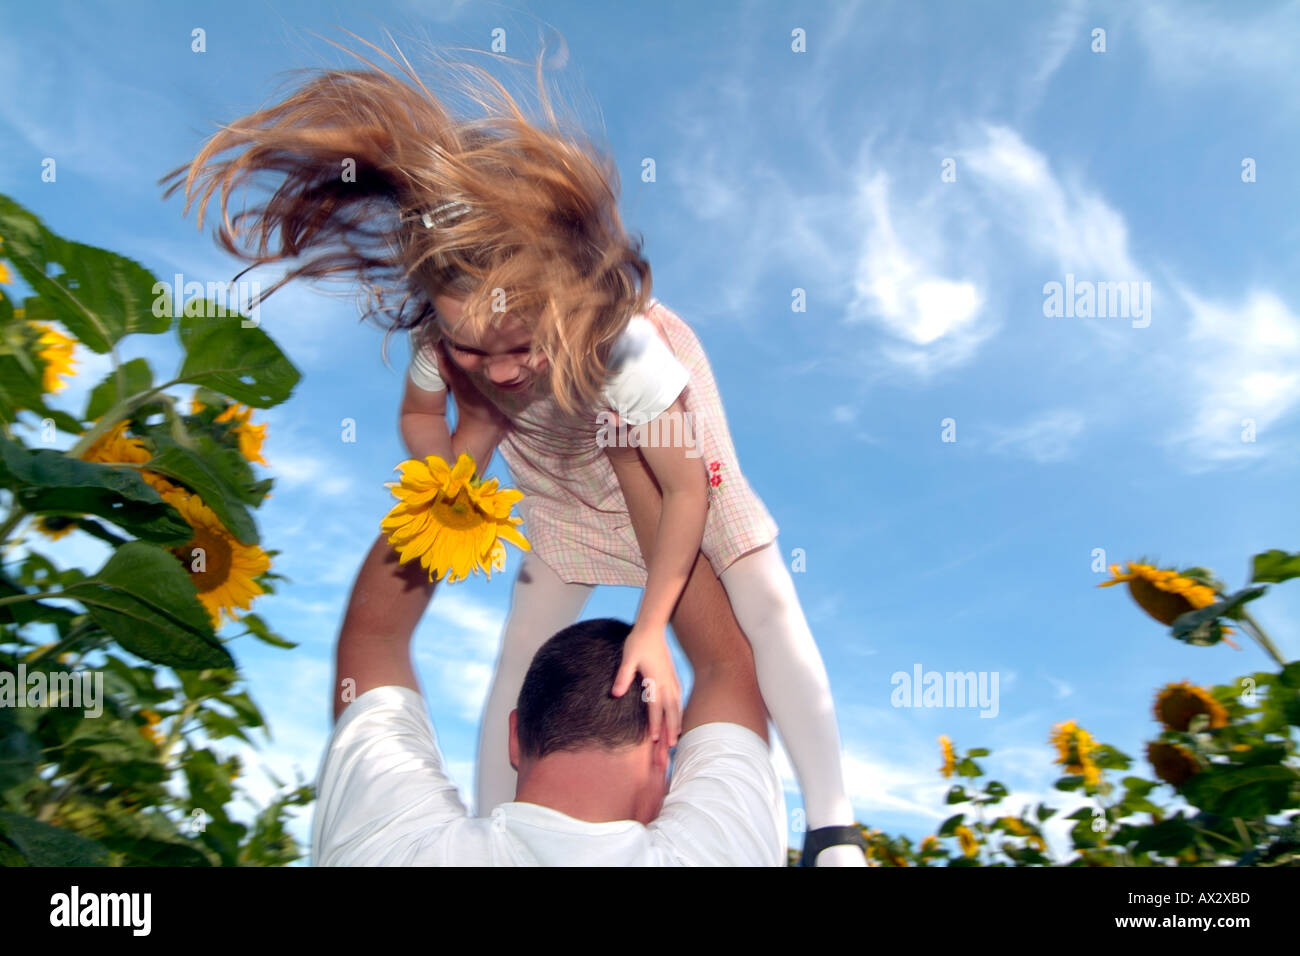 7years old happy Child with flowers Girl summer sunflower happiness - Stock Image